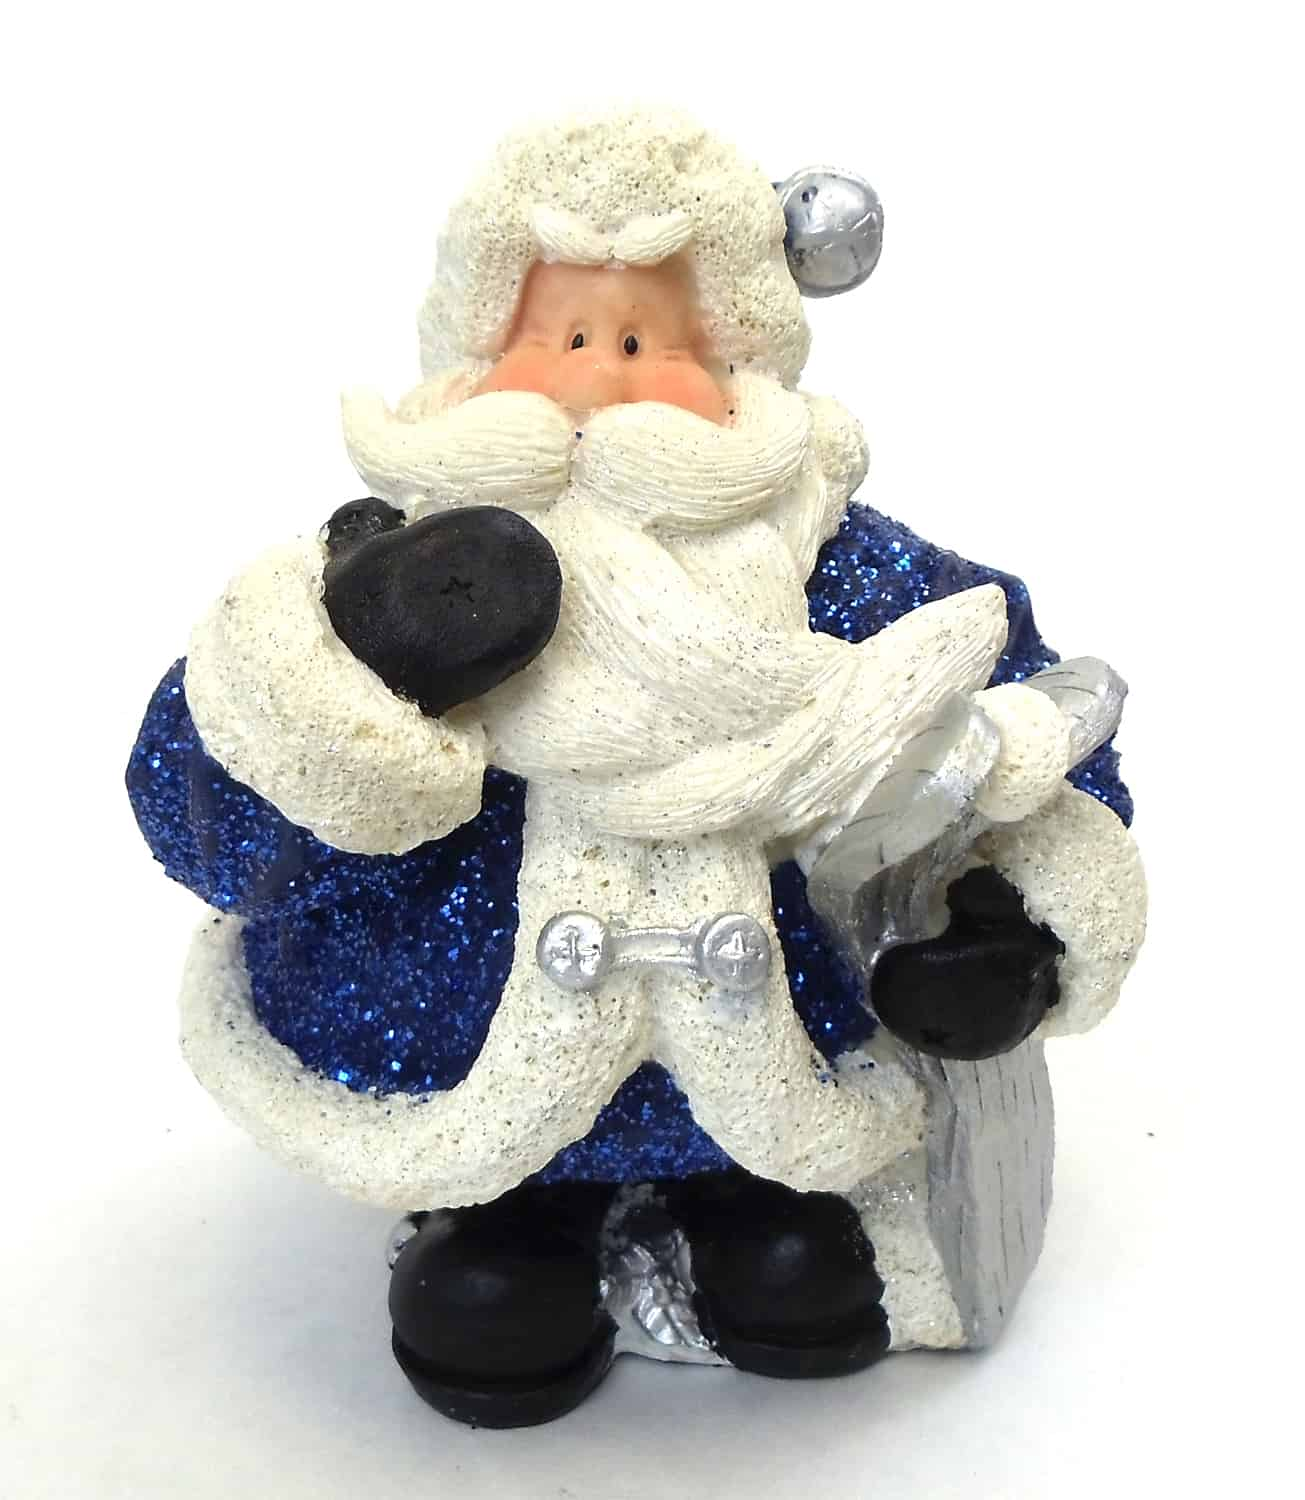 "1256553A - 6"" Resin Royal Blue Glitter Santa Statue Holding Skis"